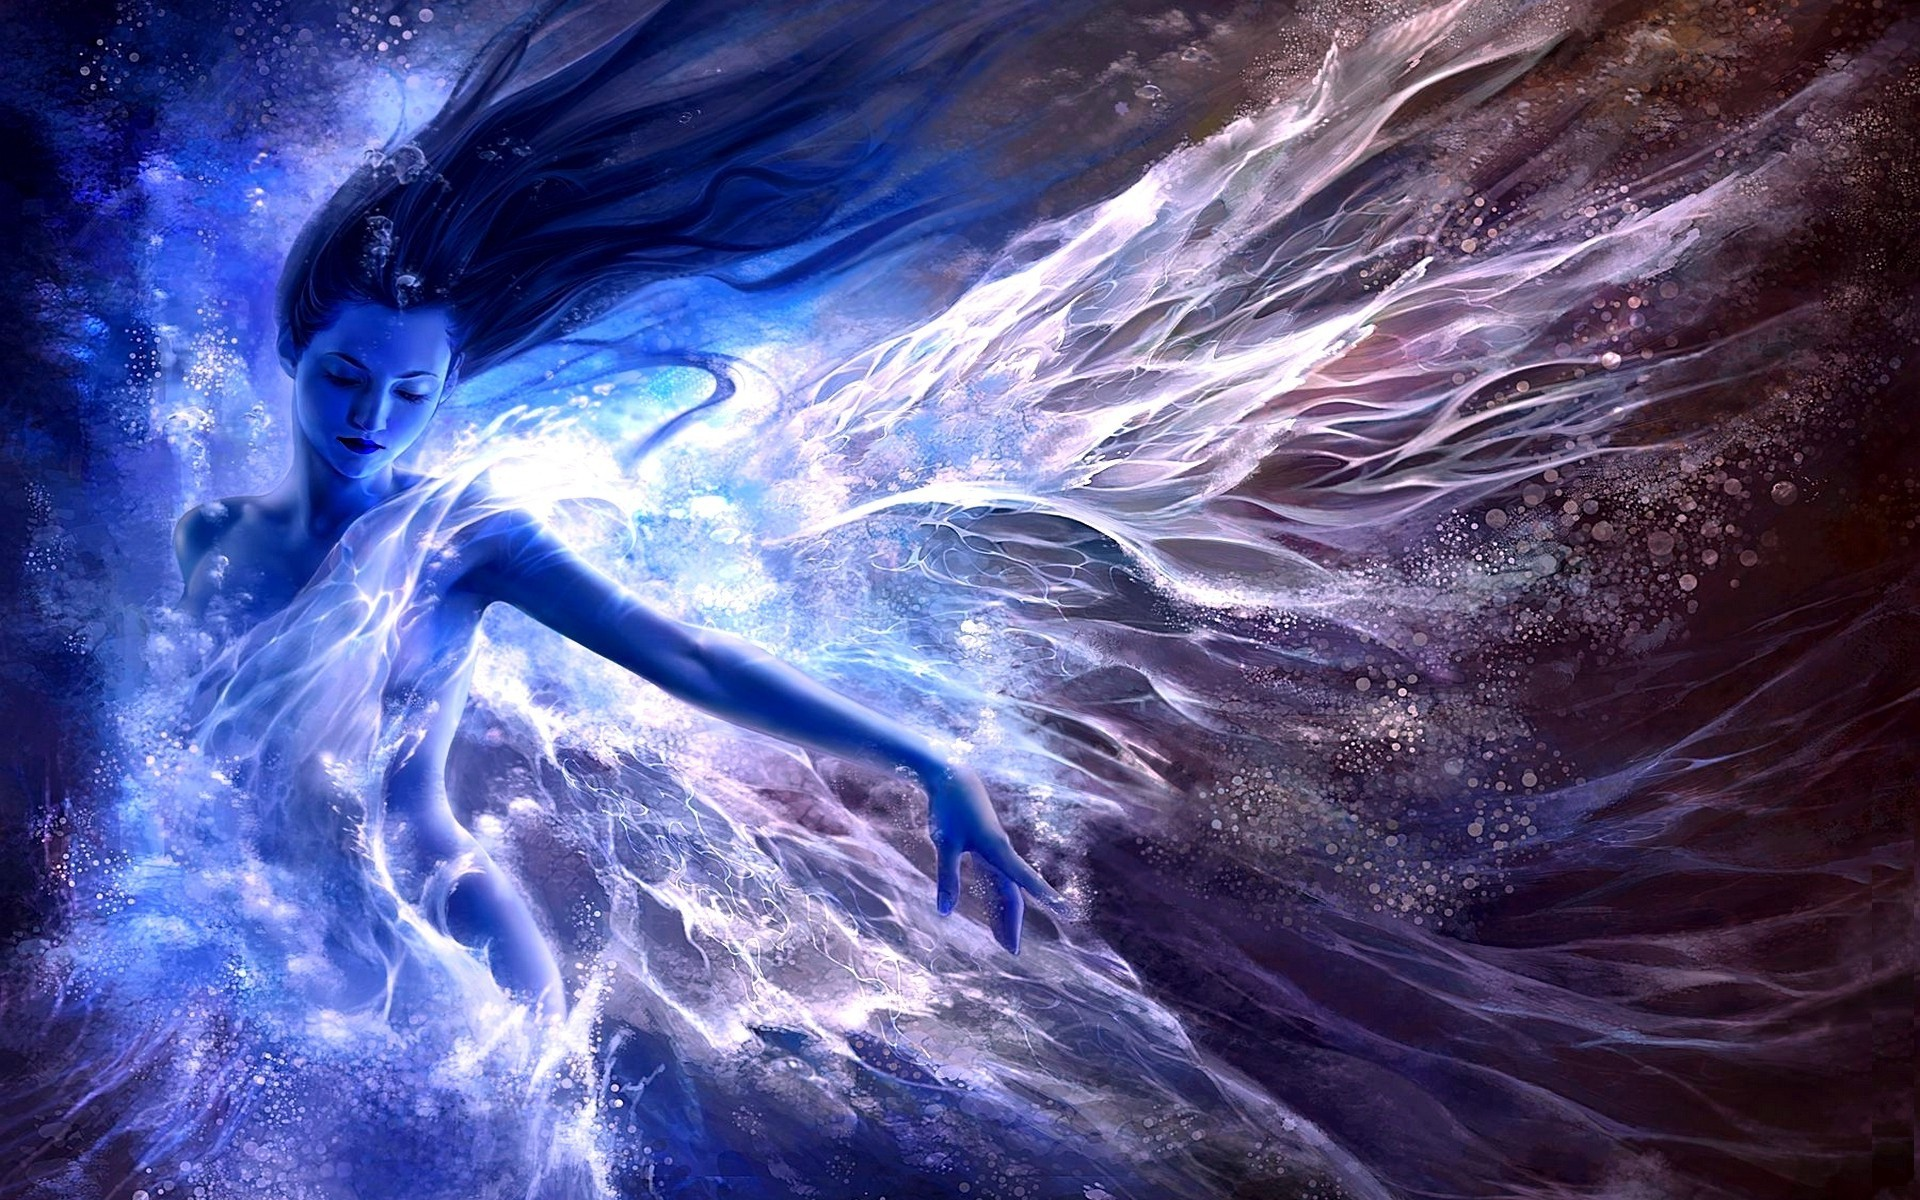 1920x1200 Blue fairy HD Wallpaper 1920x1080 Blue fairy HD Wallpaper